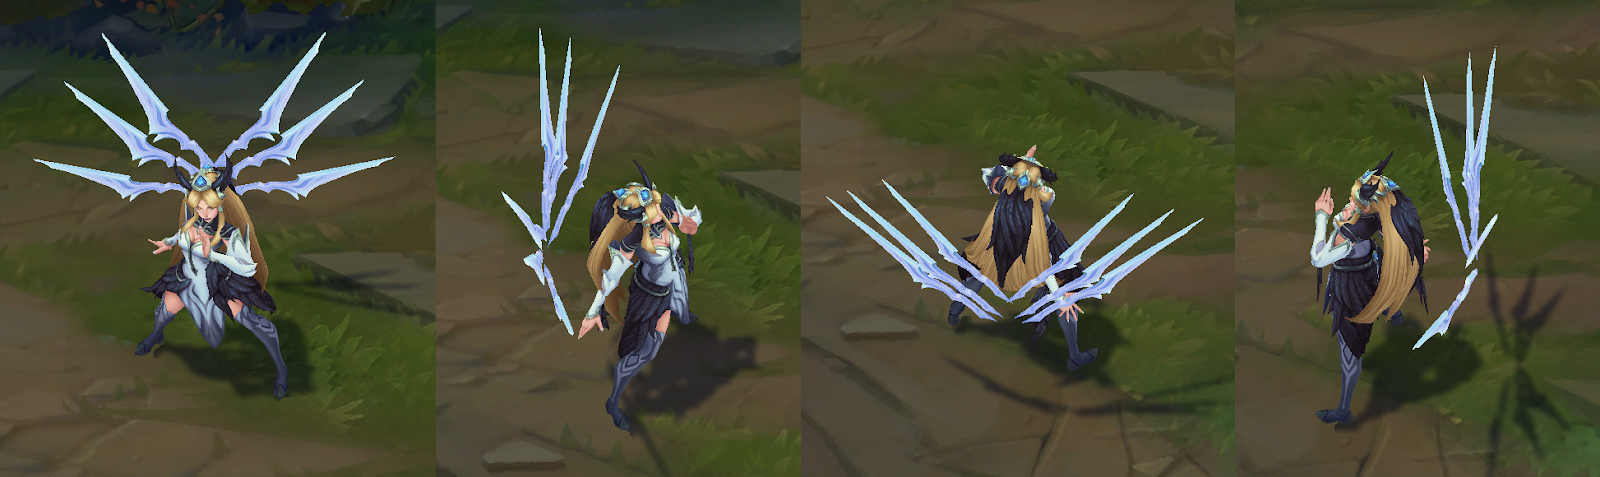 LoL Invictus Gaming Irelia Skin PBE